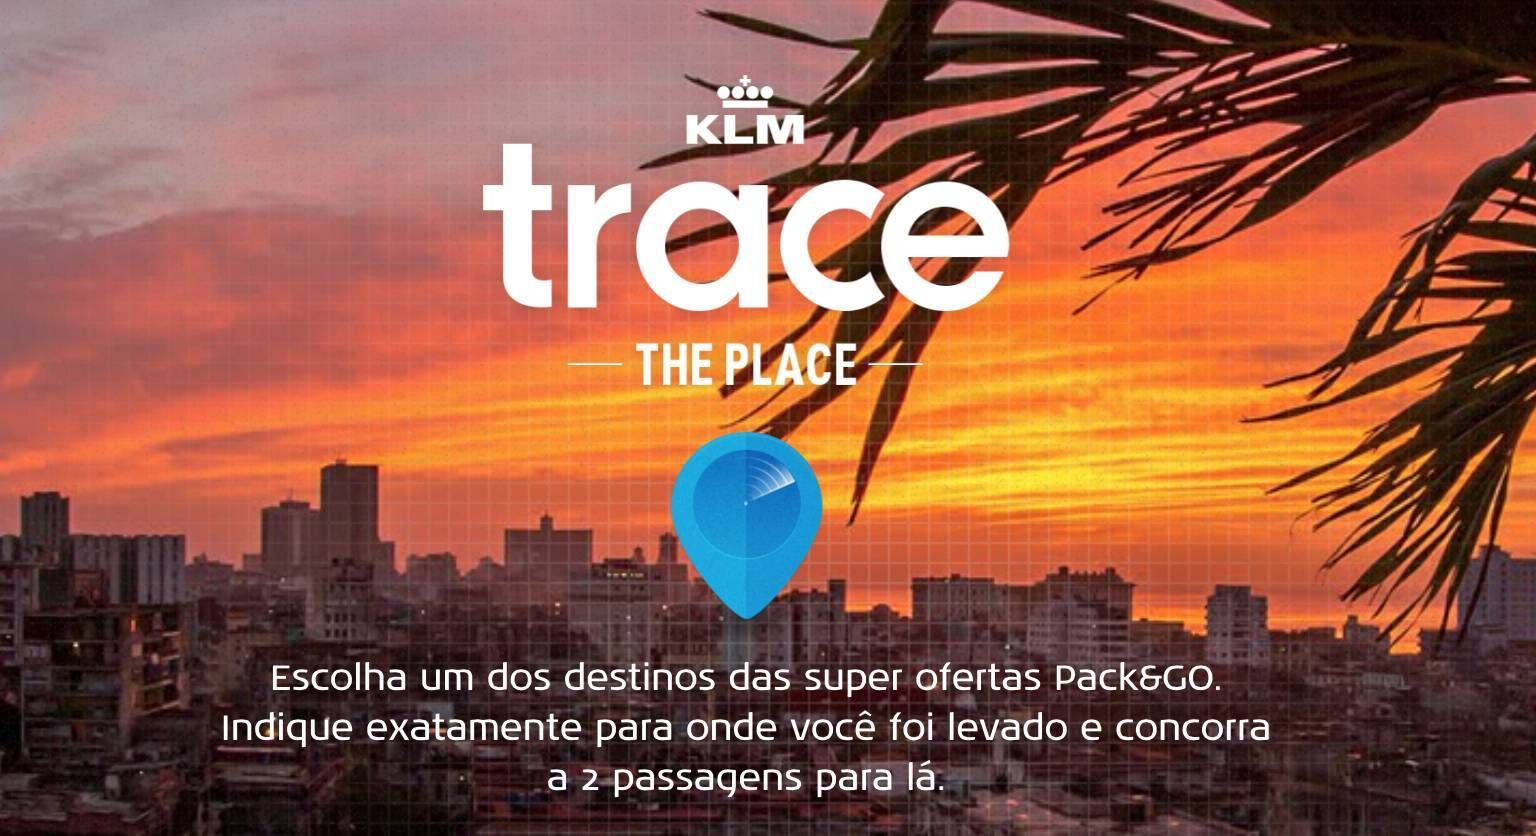 klm trace the place passageirodeprimeira